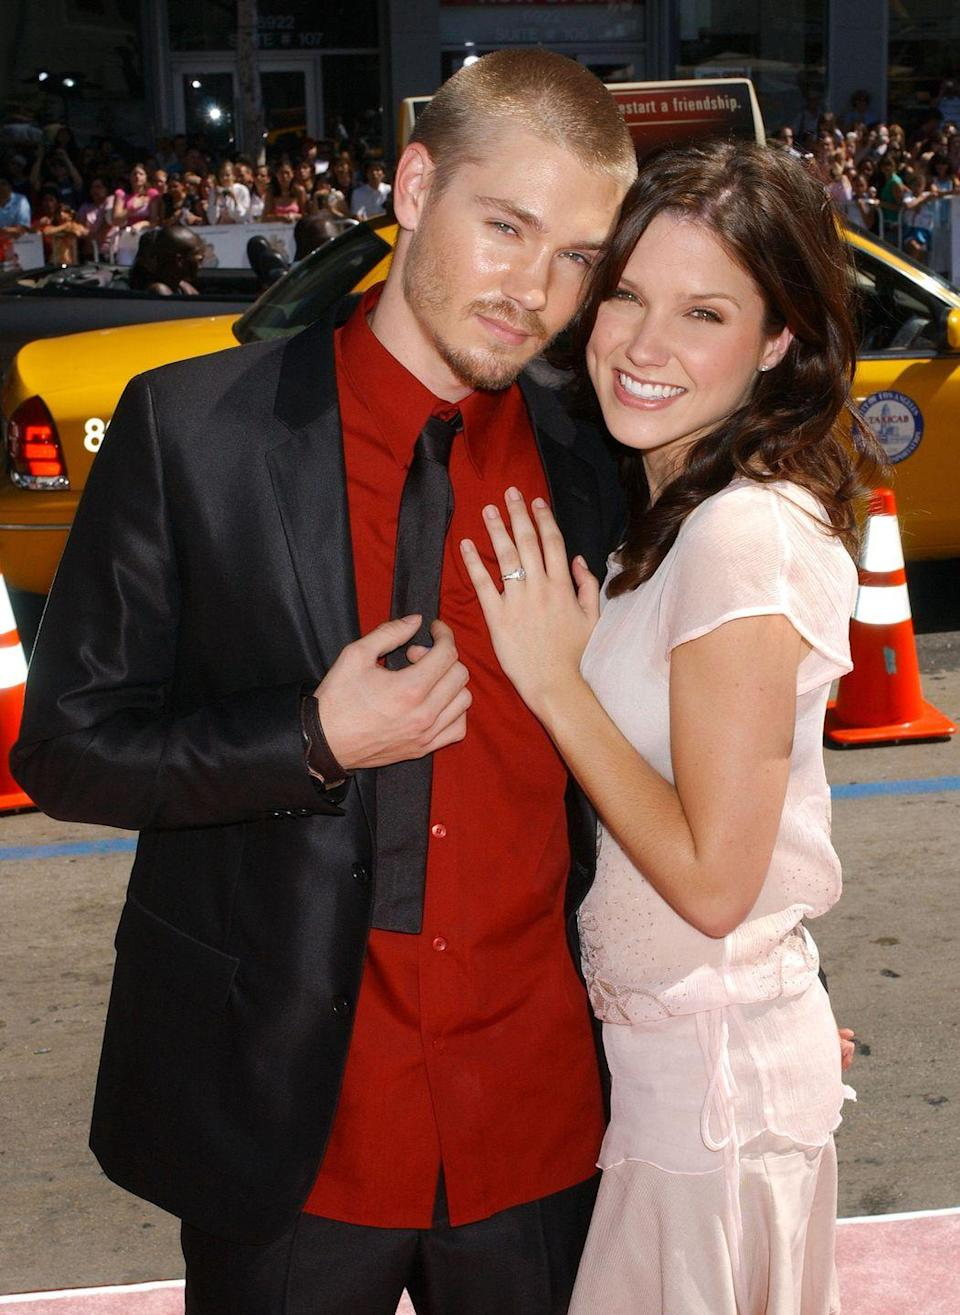 """<p>Yes, One Tree Hill's Brooke and Lucas dated IRL. In fact, Sophia Bush and Chad Michael Murray even got married. The two <a href=""""https://people.com/tv/sophia-bush-one-tree-hill-producers-exploited-breakup-chad-michael-murray/"""" rel=""""nofollow noopener"""" target=""""_blank"""" data-ylk=""""slk:met on the hit show in 2003"""" class=""""link rapid-noclick-resp"""">met on the hit show in 2003</a> and were engaged by May 2004. Months after exchanging vows in April 2005, the <a href=""""https://people.com/celebrity/chad-michael-murray-sophia-bush-split/"""" rel=""""nofollow noopener"""" target=""""_blank"""" data-ylk=""""slk:couple separated"""" class=""""link rapid-noclick-resp"""">couple separated</a>. </p><p>Sophia opened up on <a href=""""https://armchairexpertpod.com/pods/sophia-bush"""" rel=""""nofollow noopener"""" target=""""_blank"""" data-ylk=""""slk:Dax Shepard's Armchair Expert"""" class=""""link rapid-noclick-resp"""">Dax Shepard's Armchair Expert</a> about breaking up while filming a show, and producer manipulation: 'They made practice of taking advantage of people's personal lives and not just for me and for my ex—for other actors on the show who would share, like as you do when you get close to people, deeply personal things that were happening in their lives and they would wind up in storylines. It wasn't okay.'</p>"""